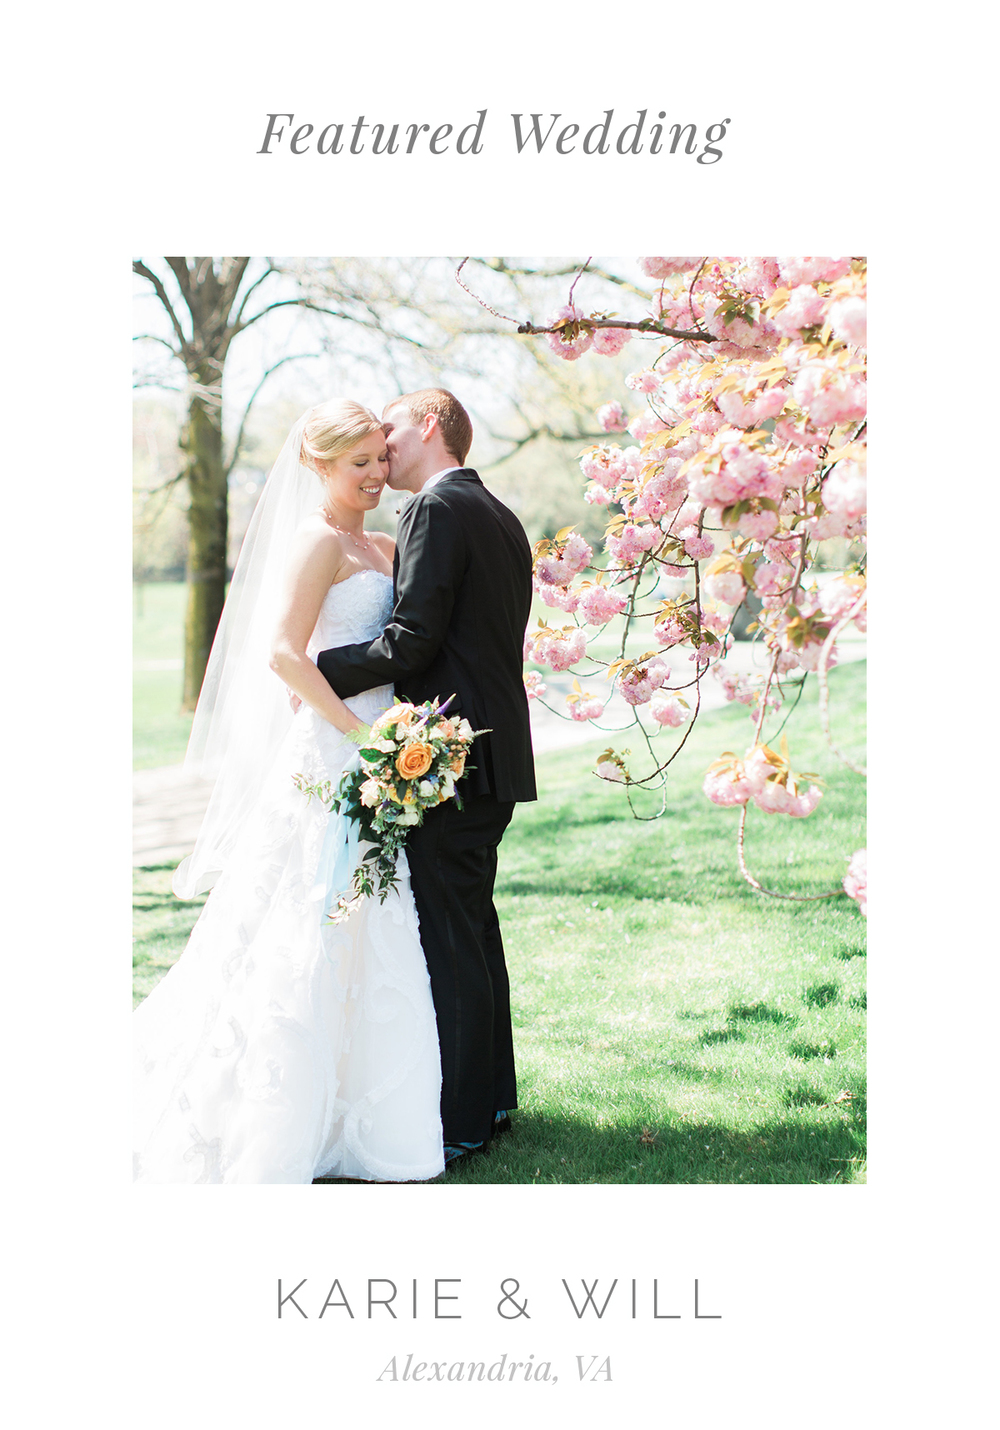 Featured Wedding Karie & Will.jpg